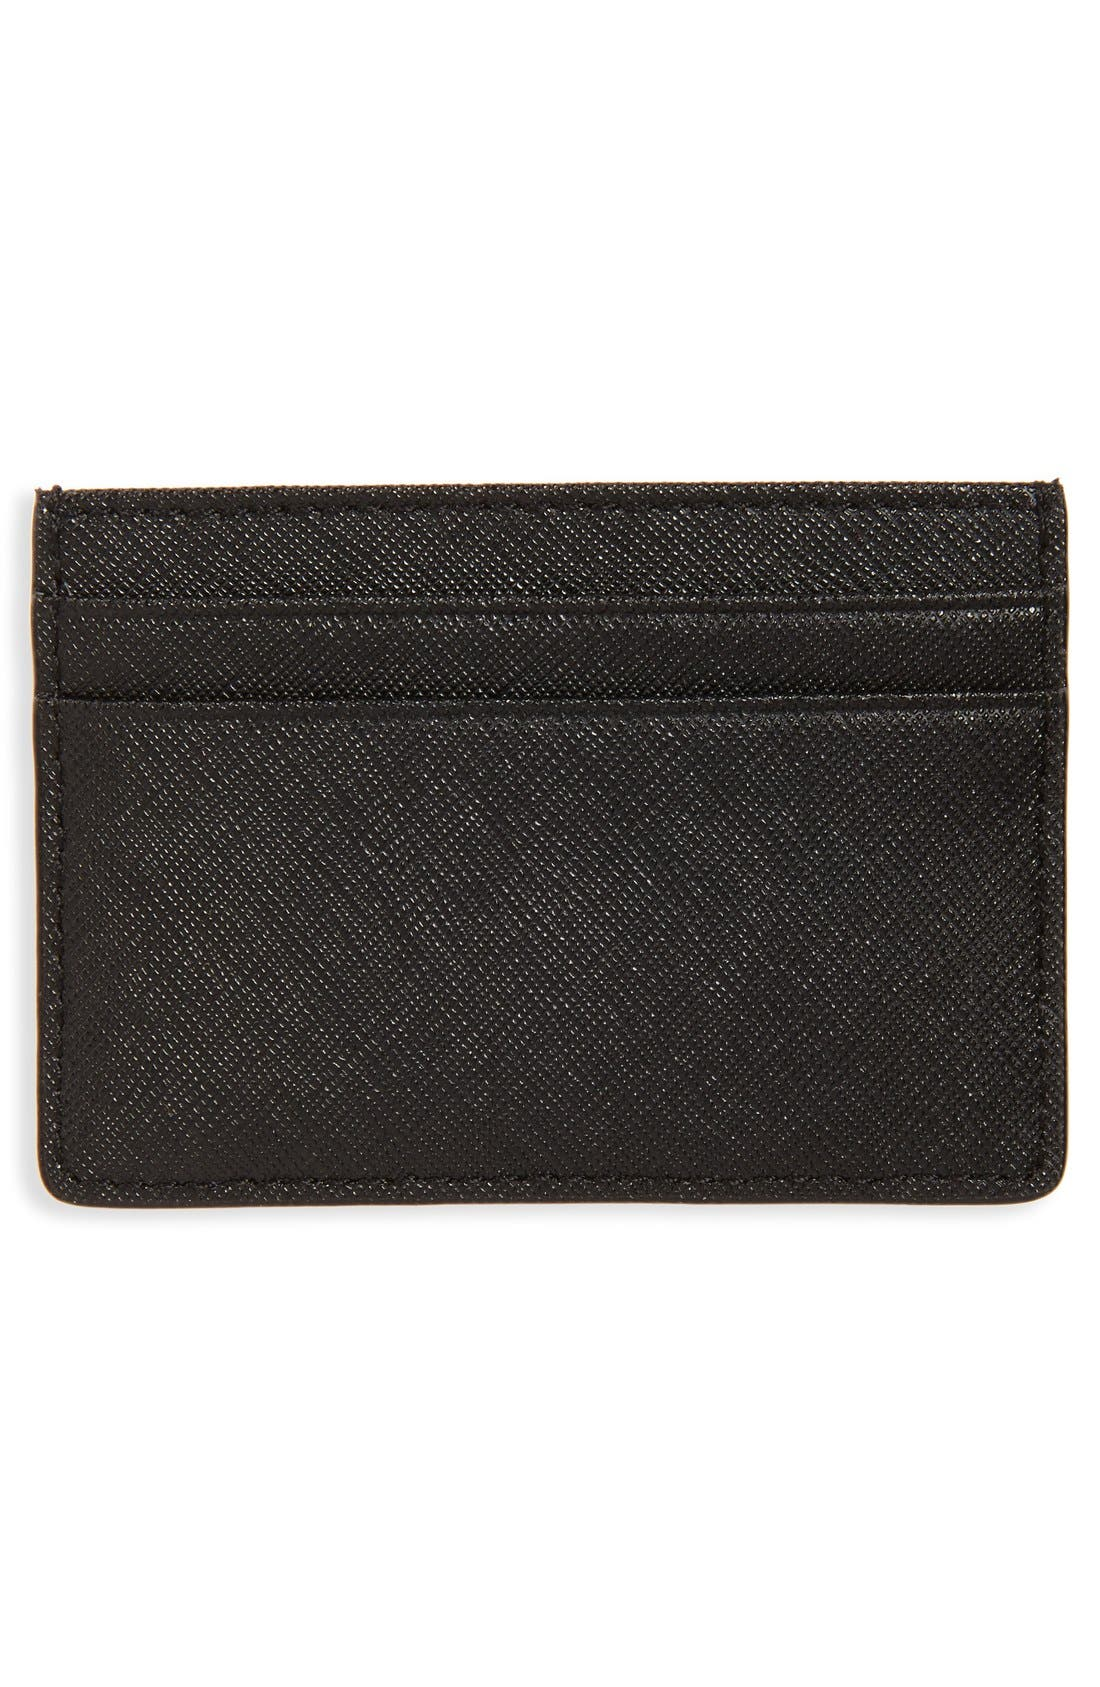 TORY BURCH, 'Robinson' Slim Saffiano Leather Card Case, Alternate thumbnail 2, color, 001